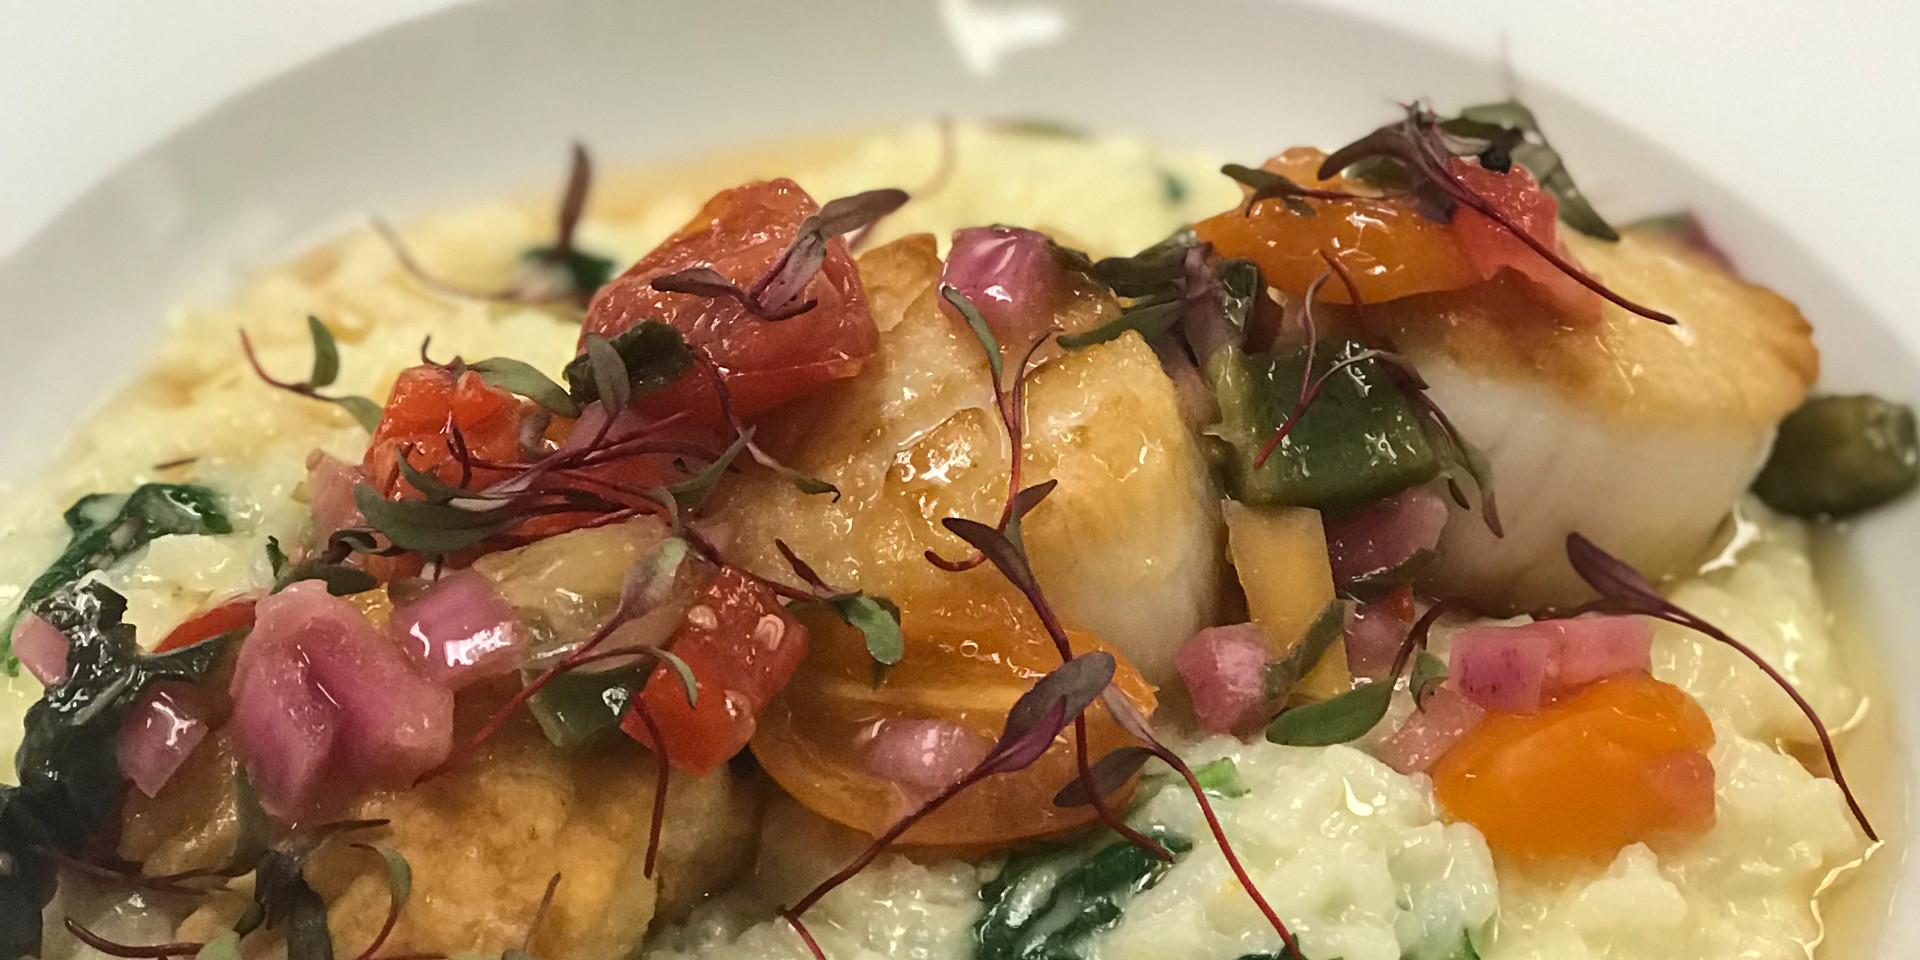 Pan Seared Scallops over Risotto